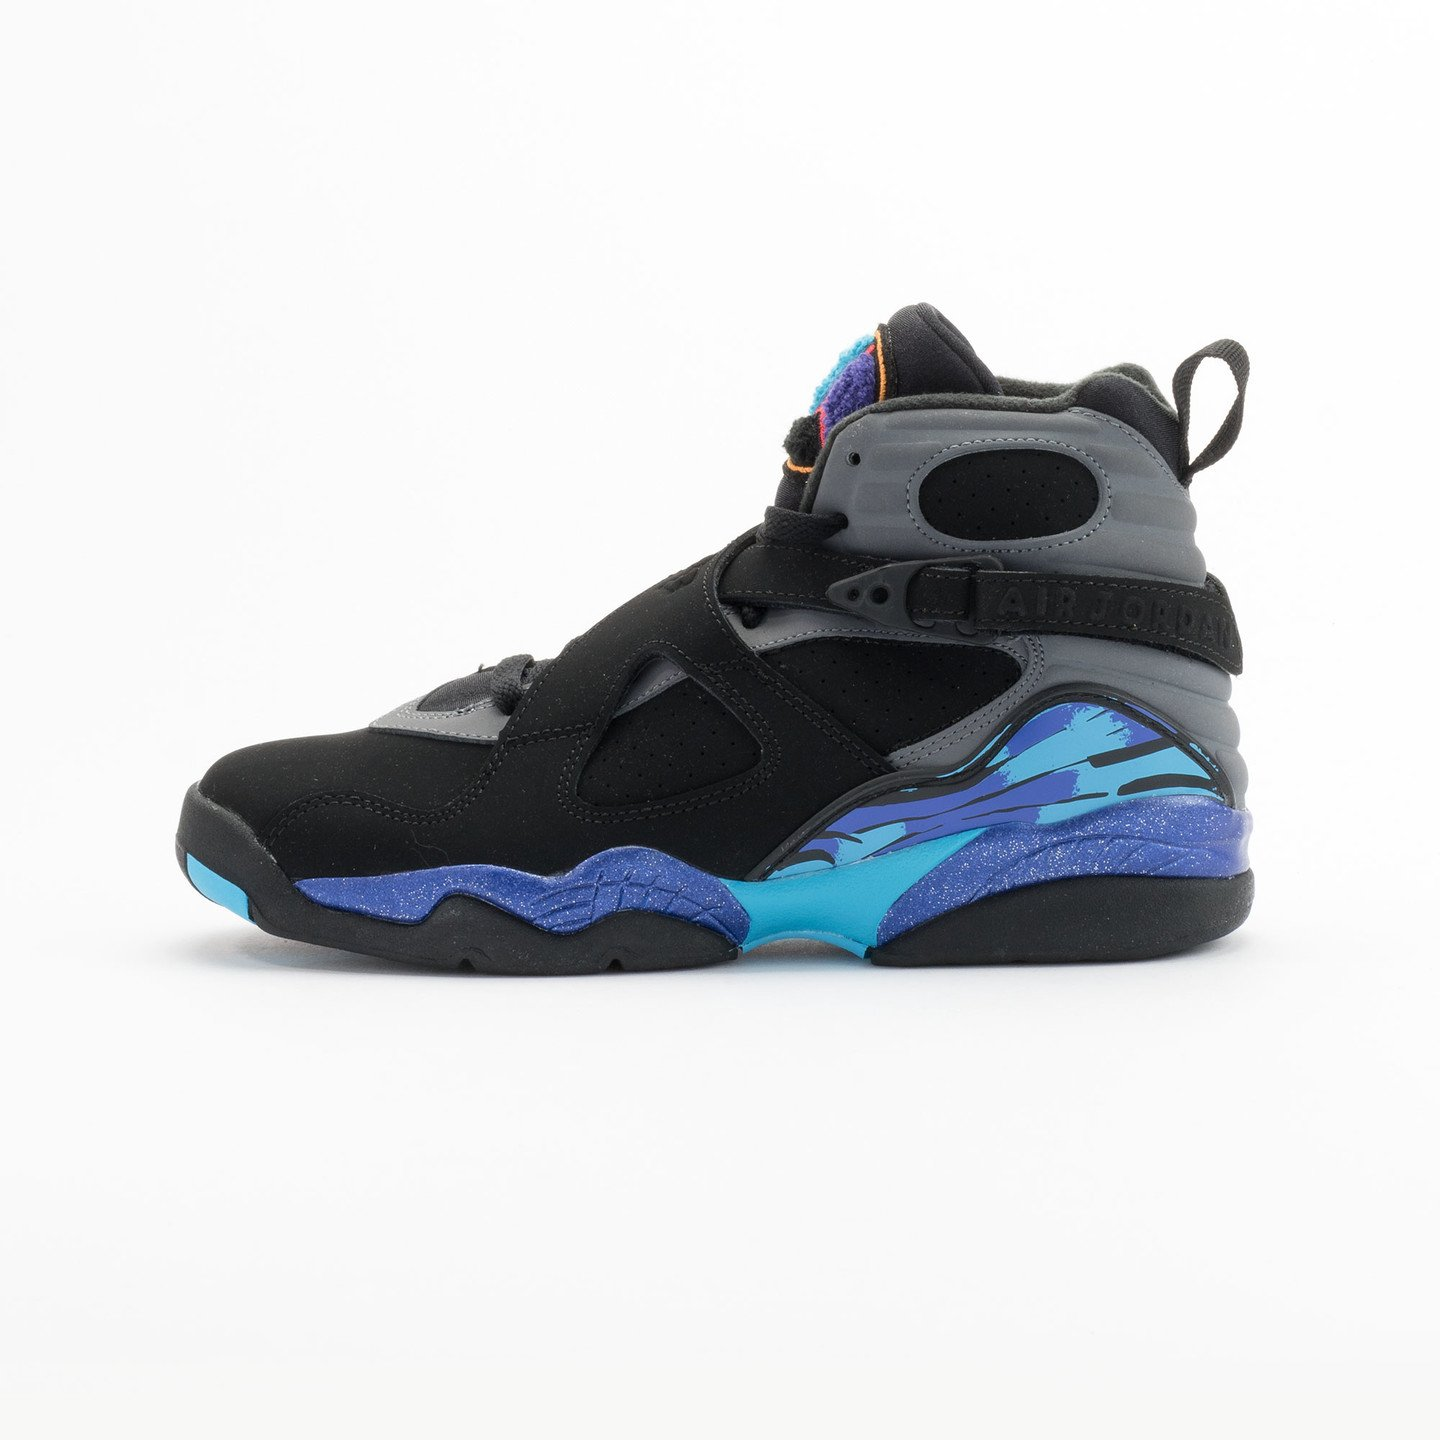 Jordan Air Jordan Retro 8 'Aqua' BG Black/True Red-Flint Grey-Bright Concord 305368-025-36.5